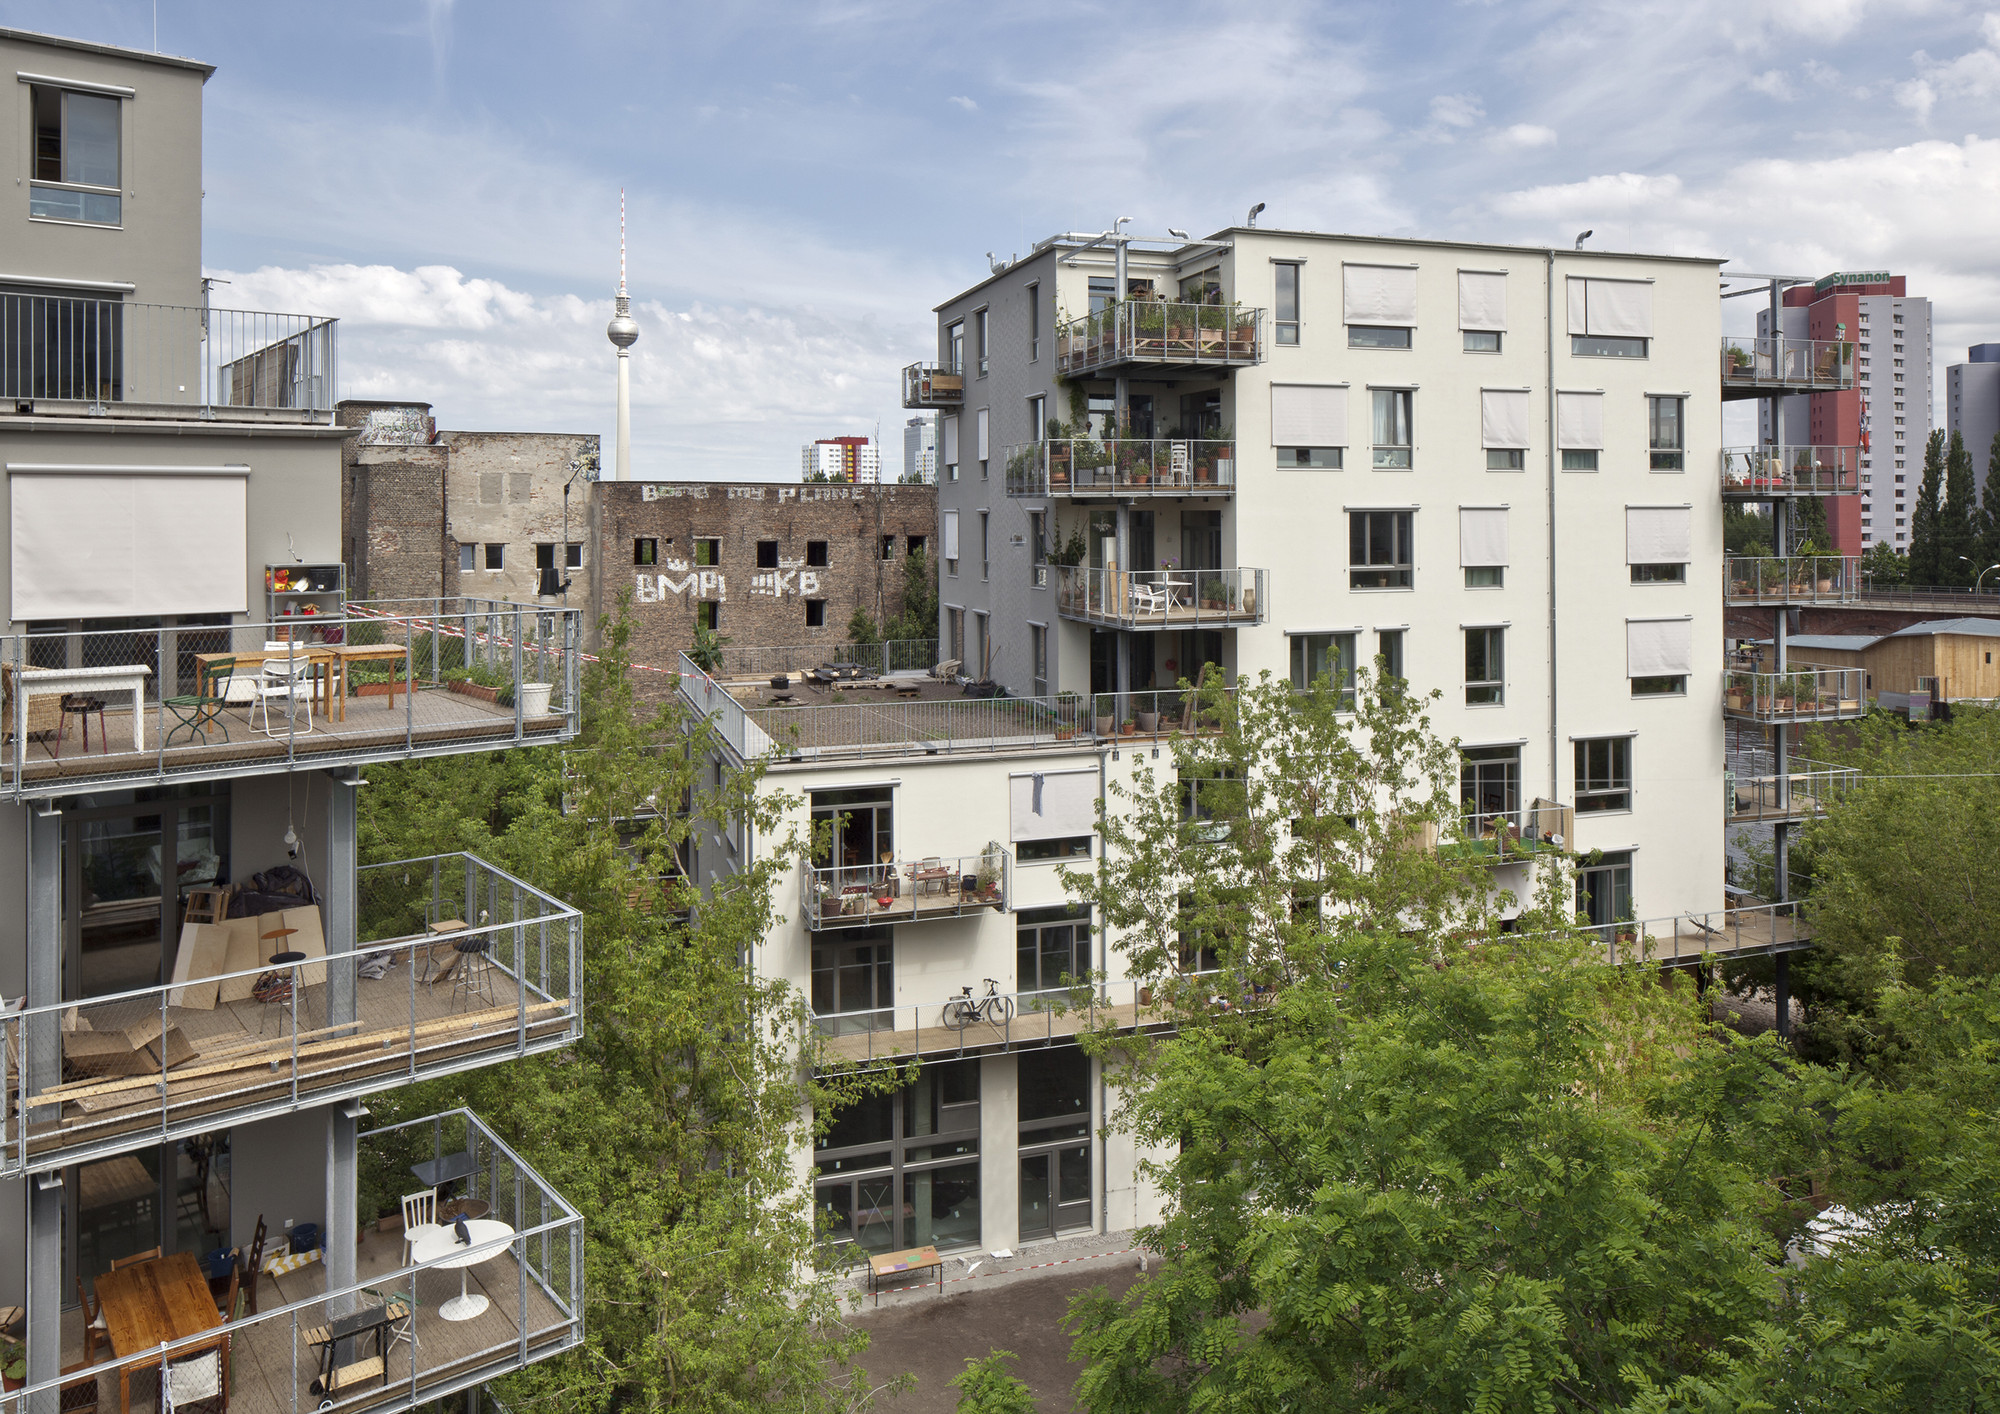 Coop housing at river spreefeld carpaneto architekten - Architekten in berlin ...